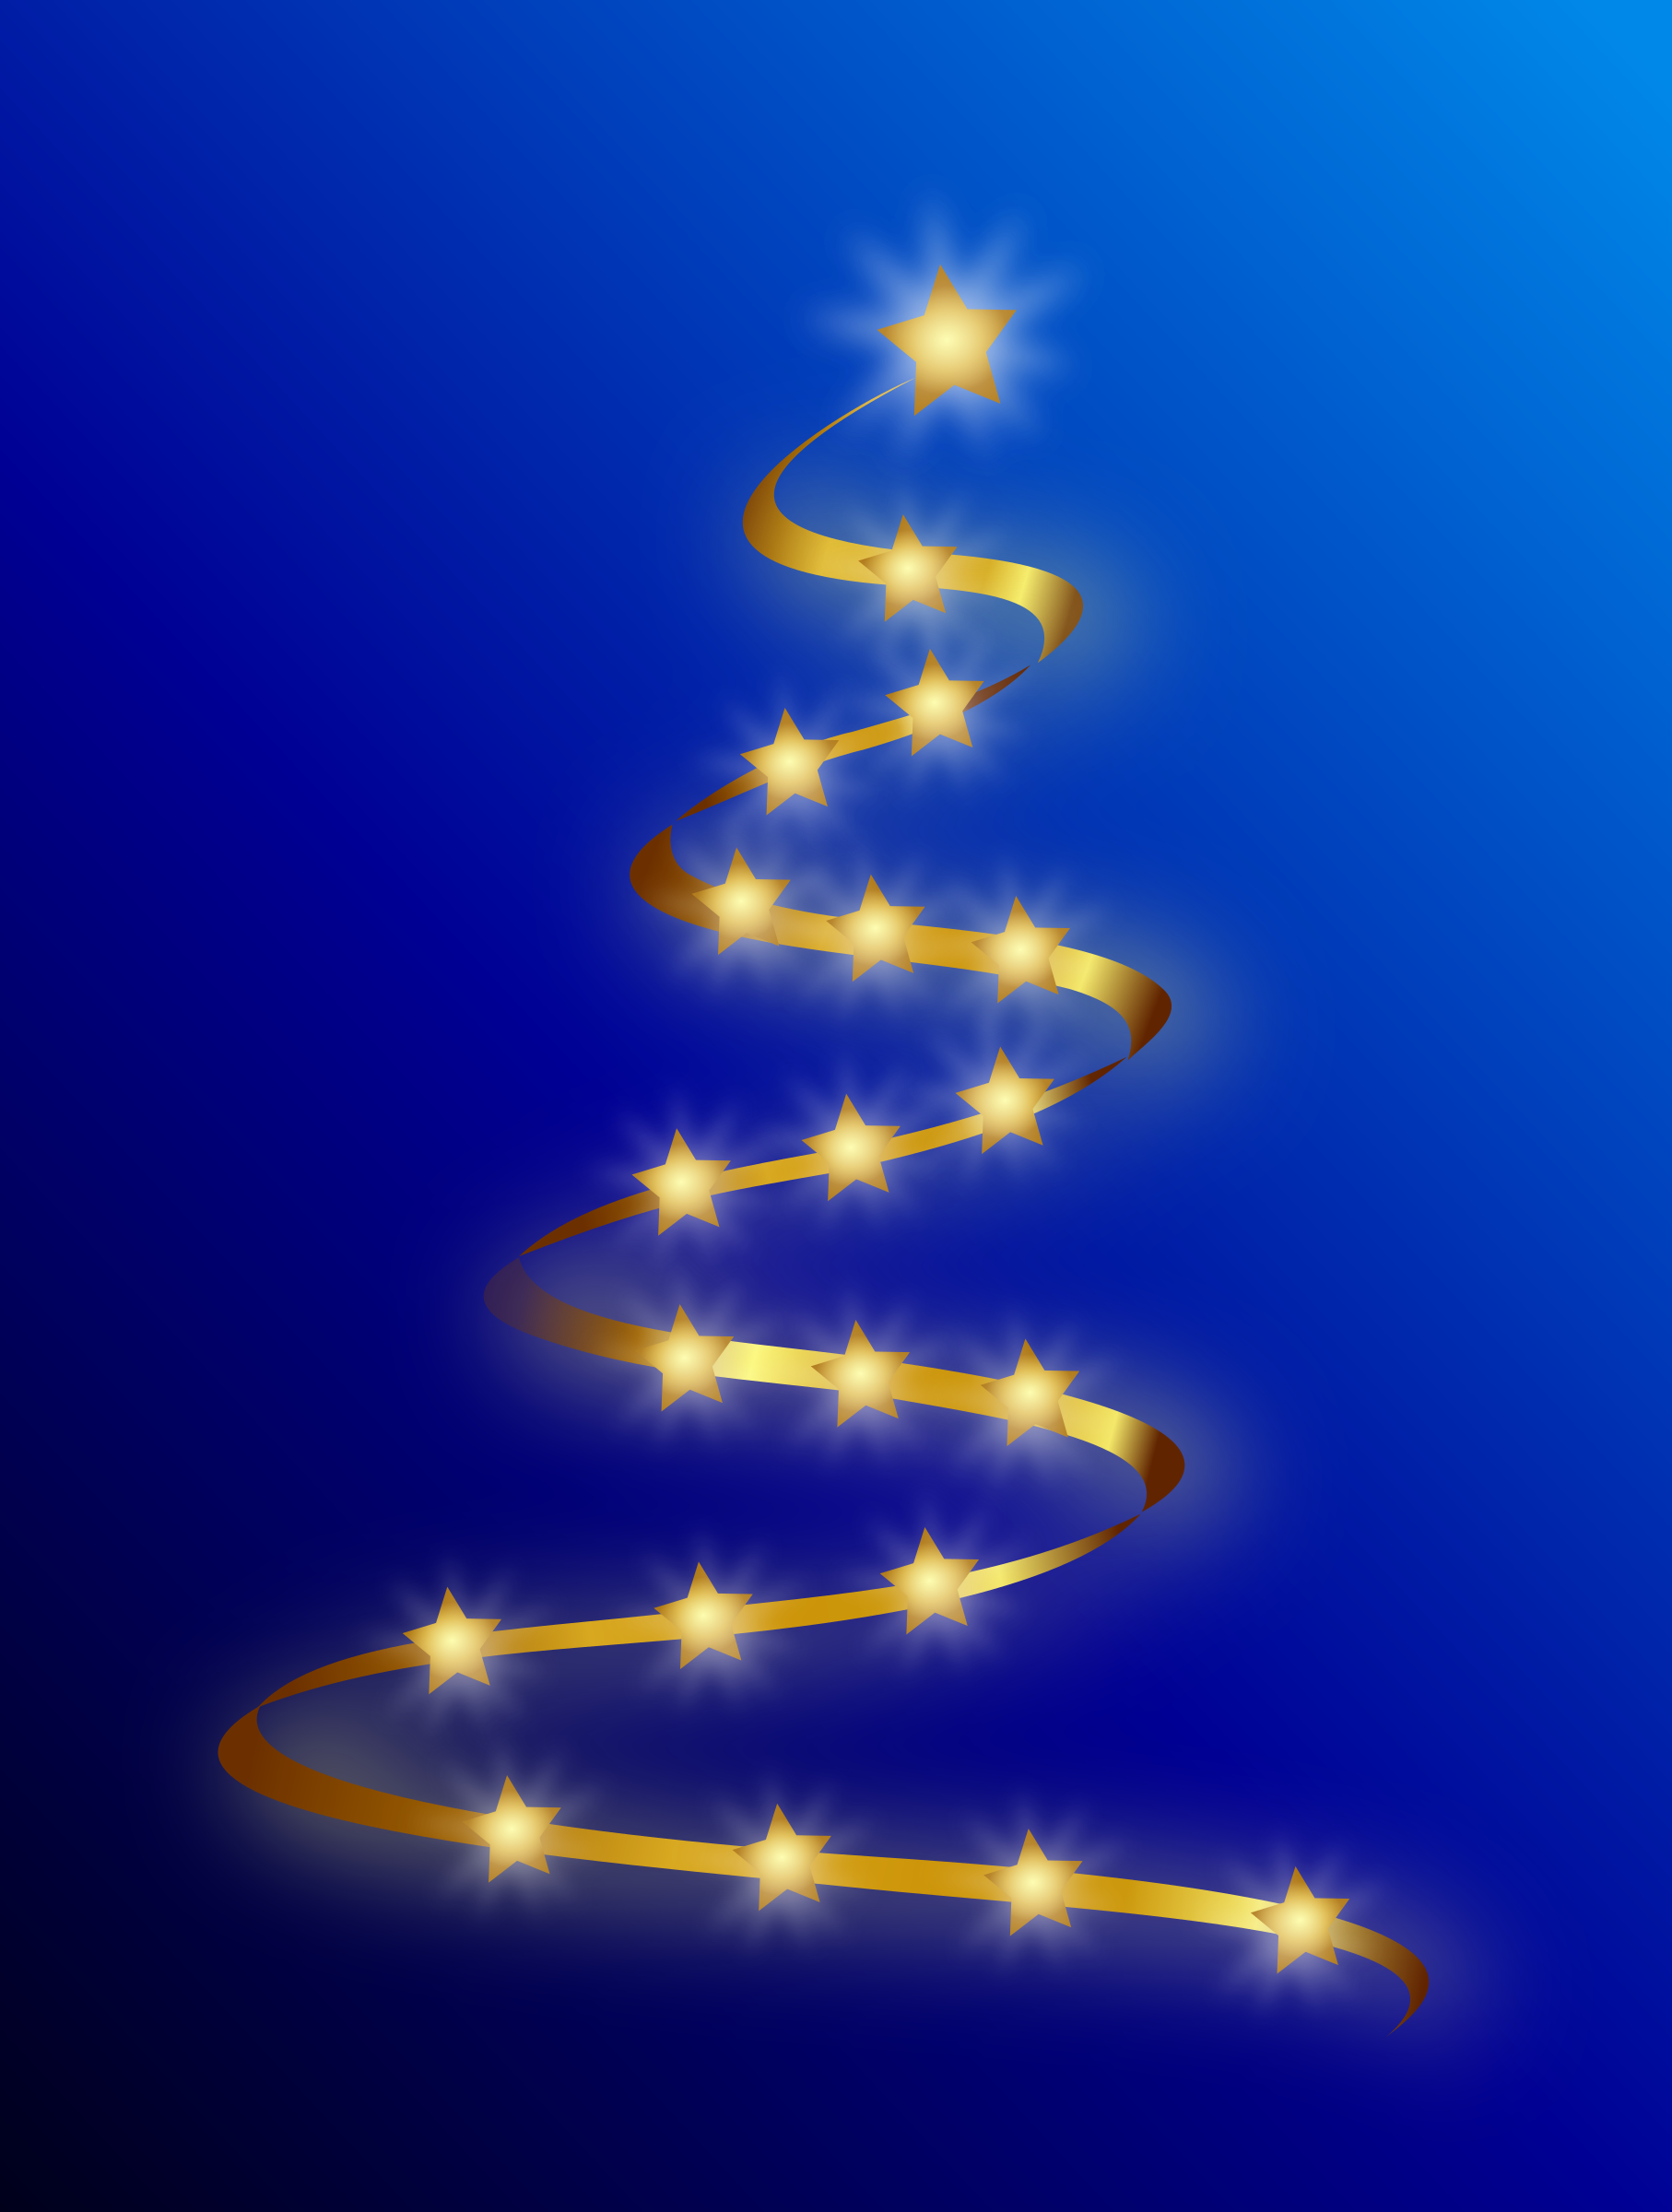 Modern Christmas Tree by Merlin2525